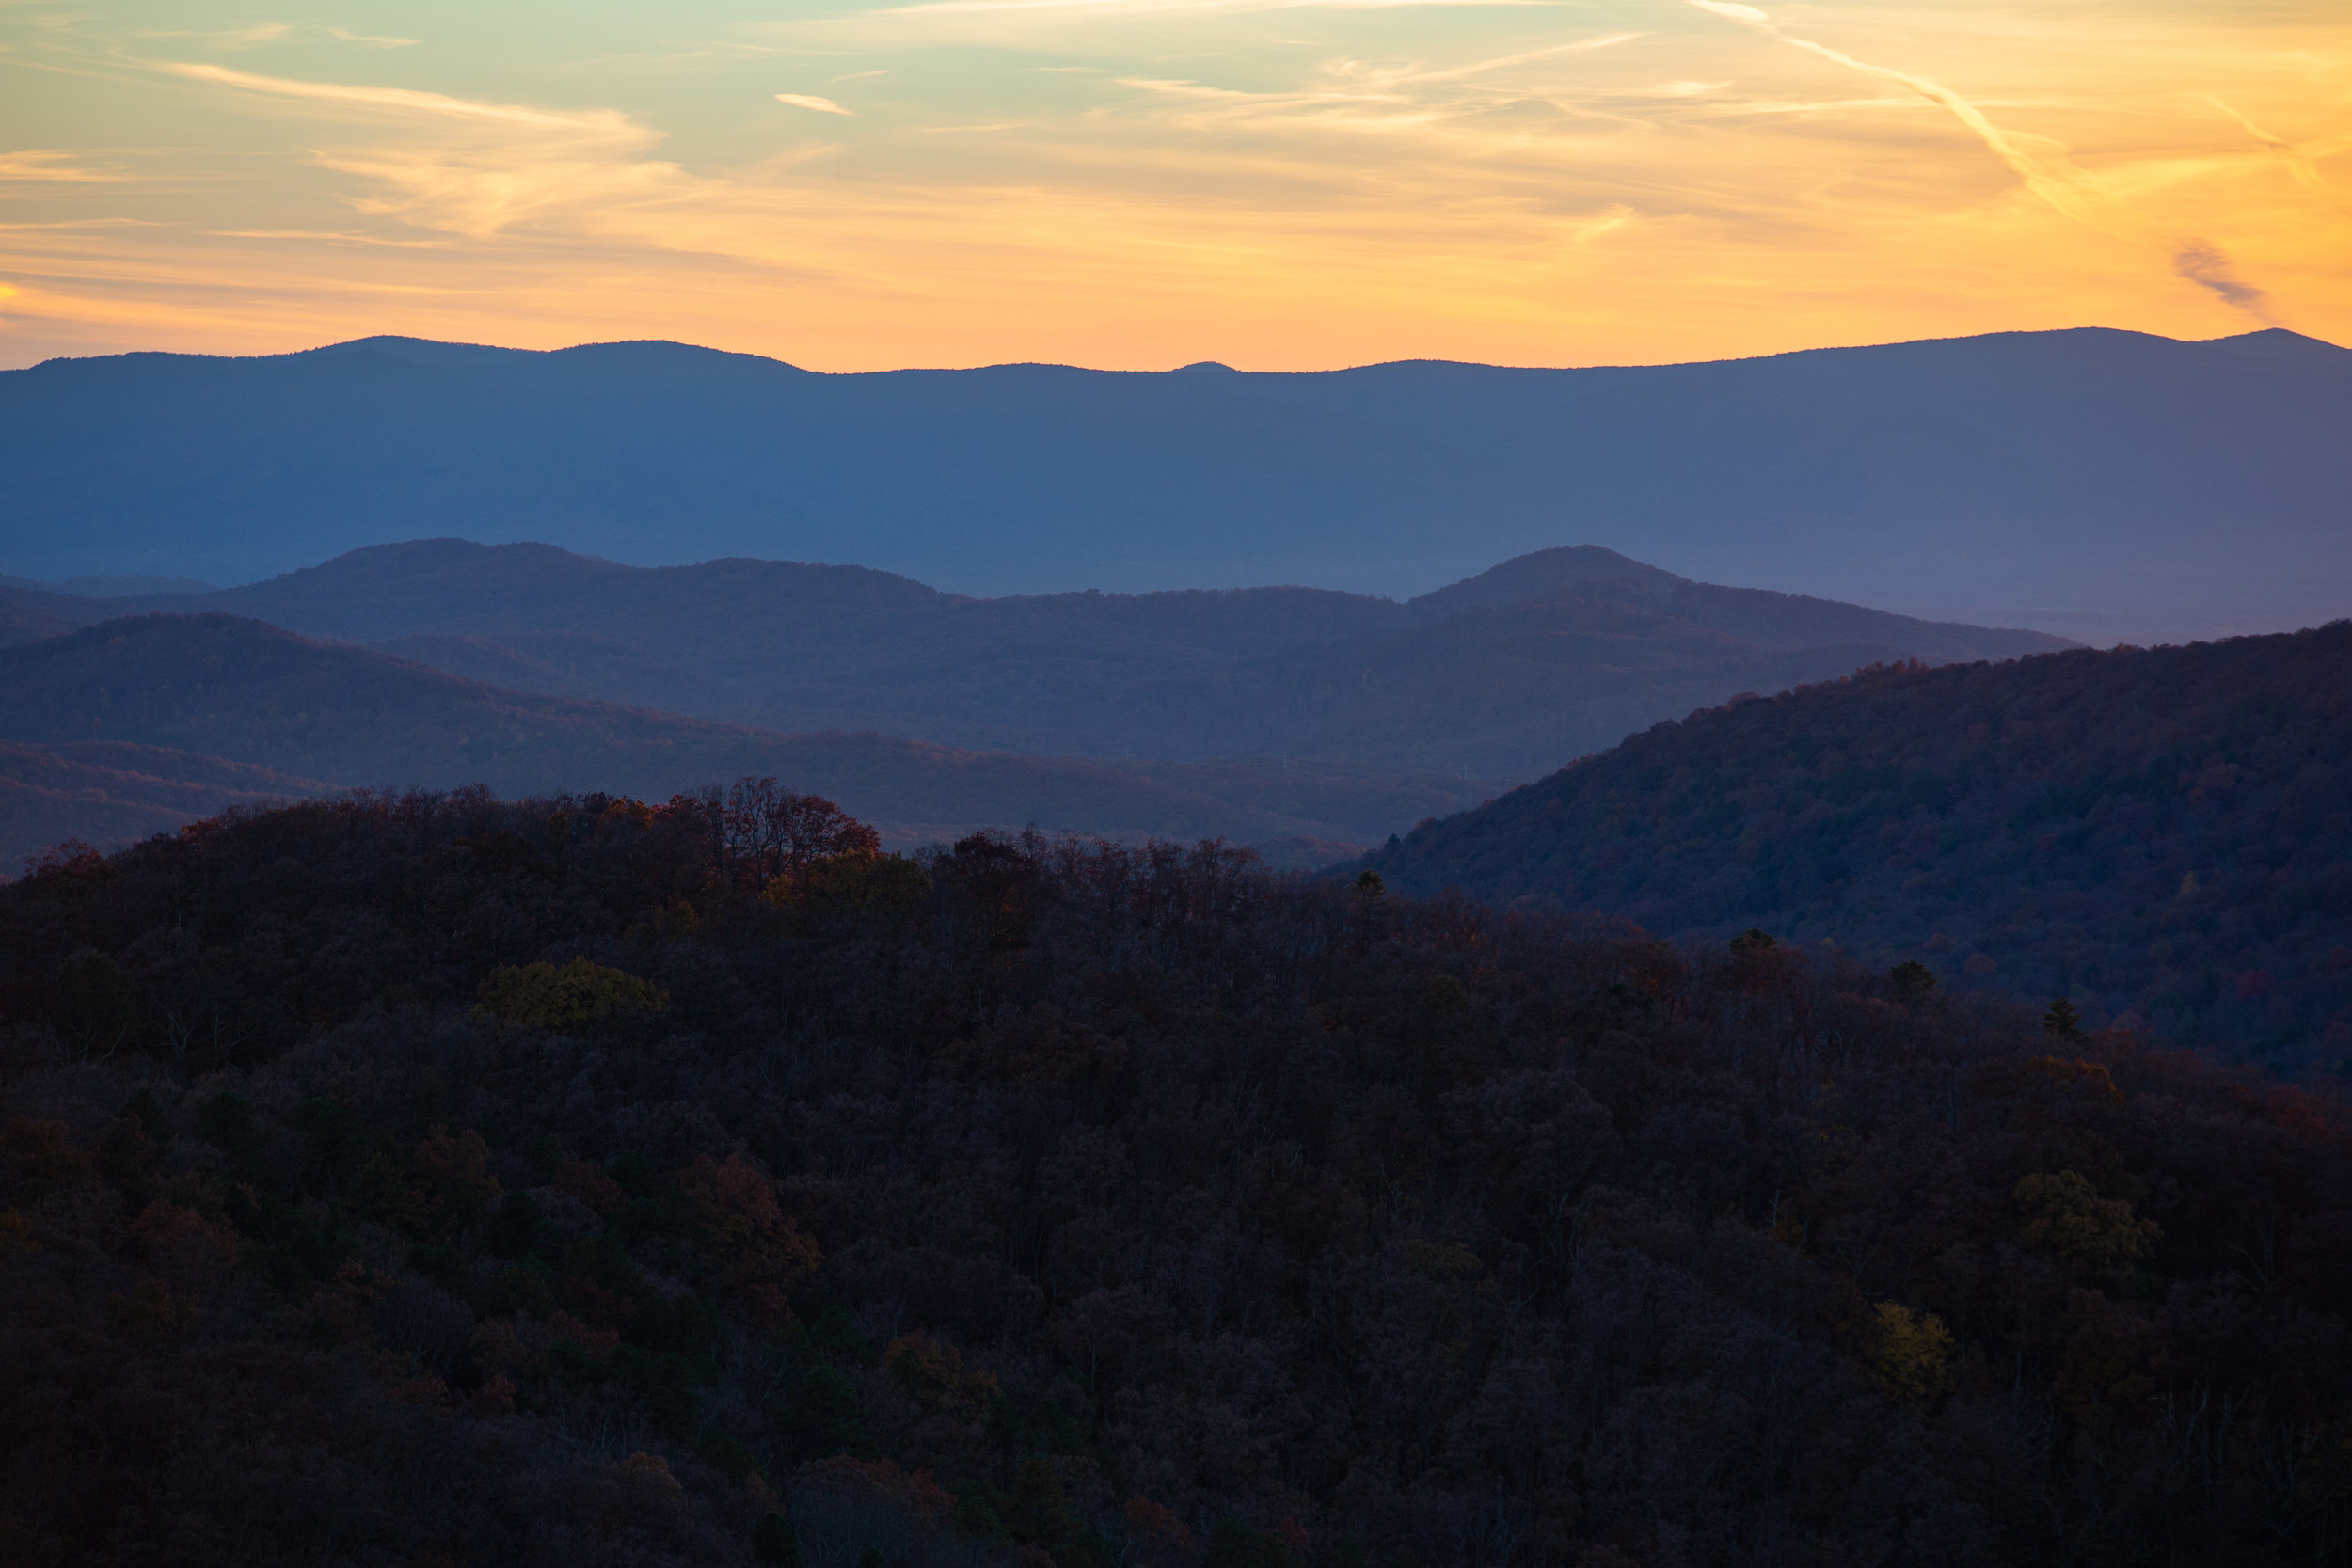 Shenandoah-National-Park-blue-ridge-parkway-day-mountains-afternoon-haze-layers-distance-texture-trees-fall-sunset-evening-BLUE